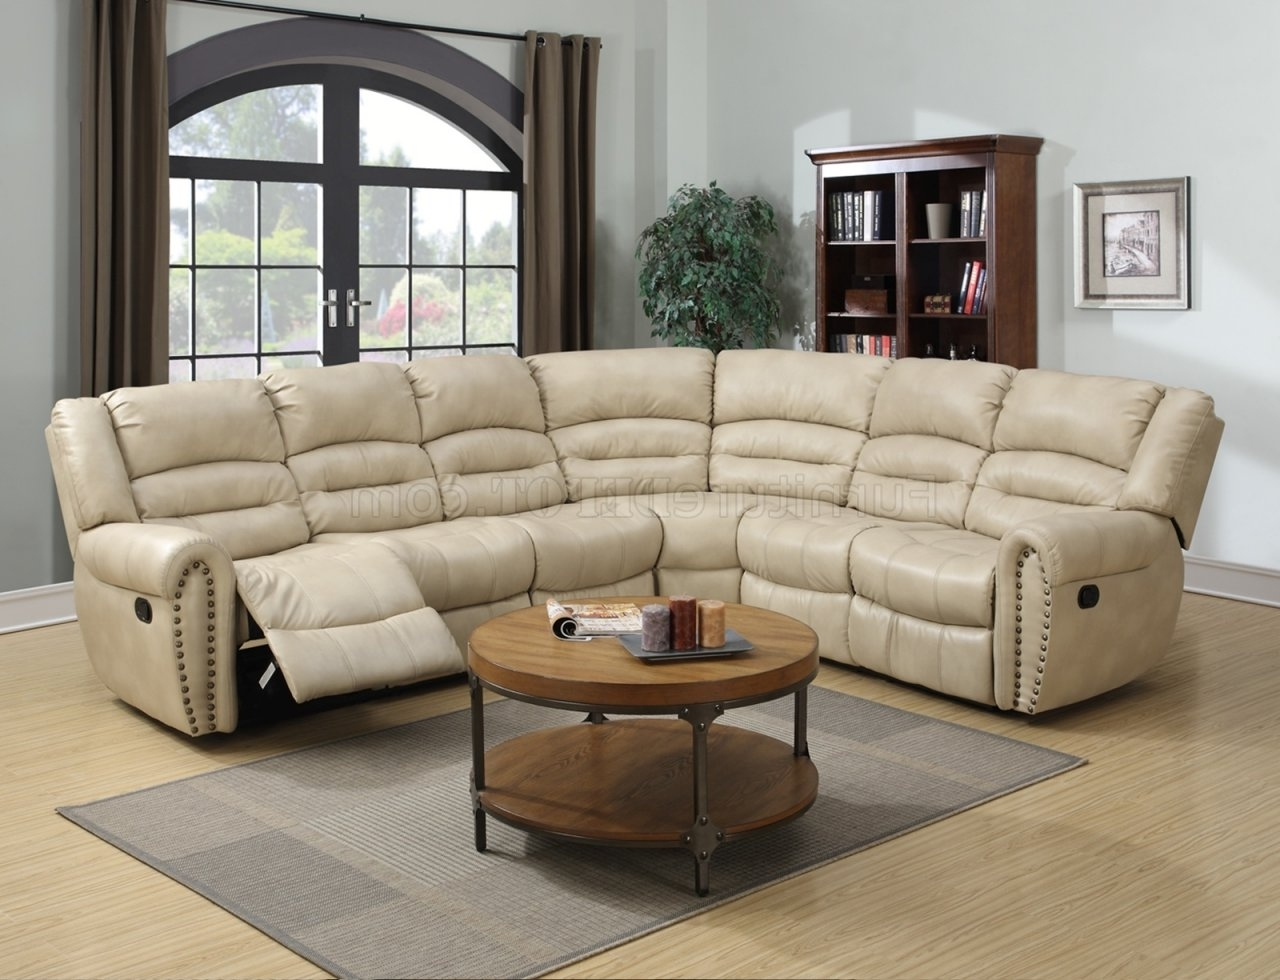 Famous Leather Motion Sectional Sofas In G687 Motion Sectional Sofa In Beige Bonded Leatherglory (View 4 of 20)